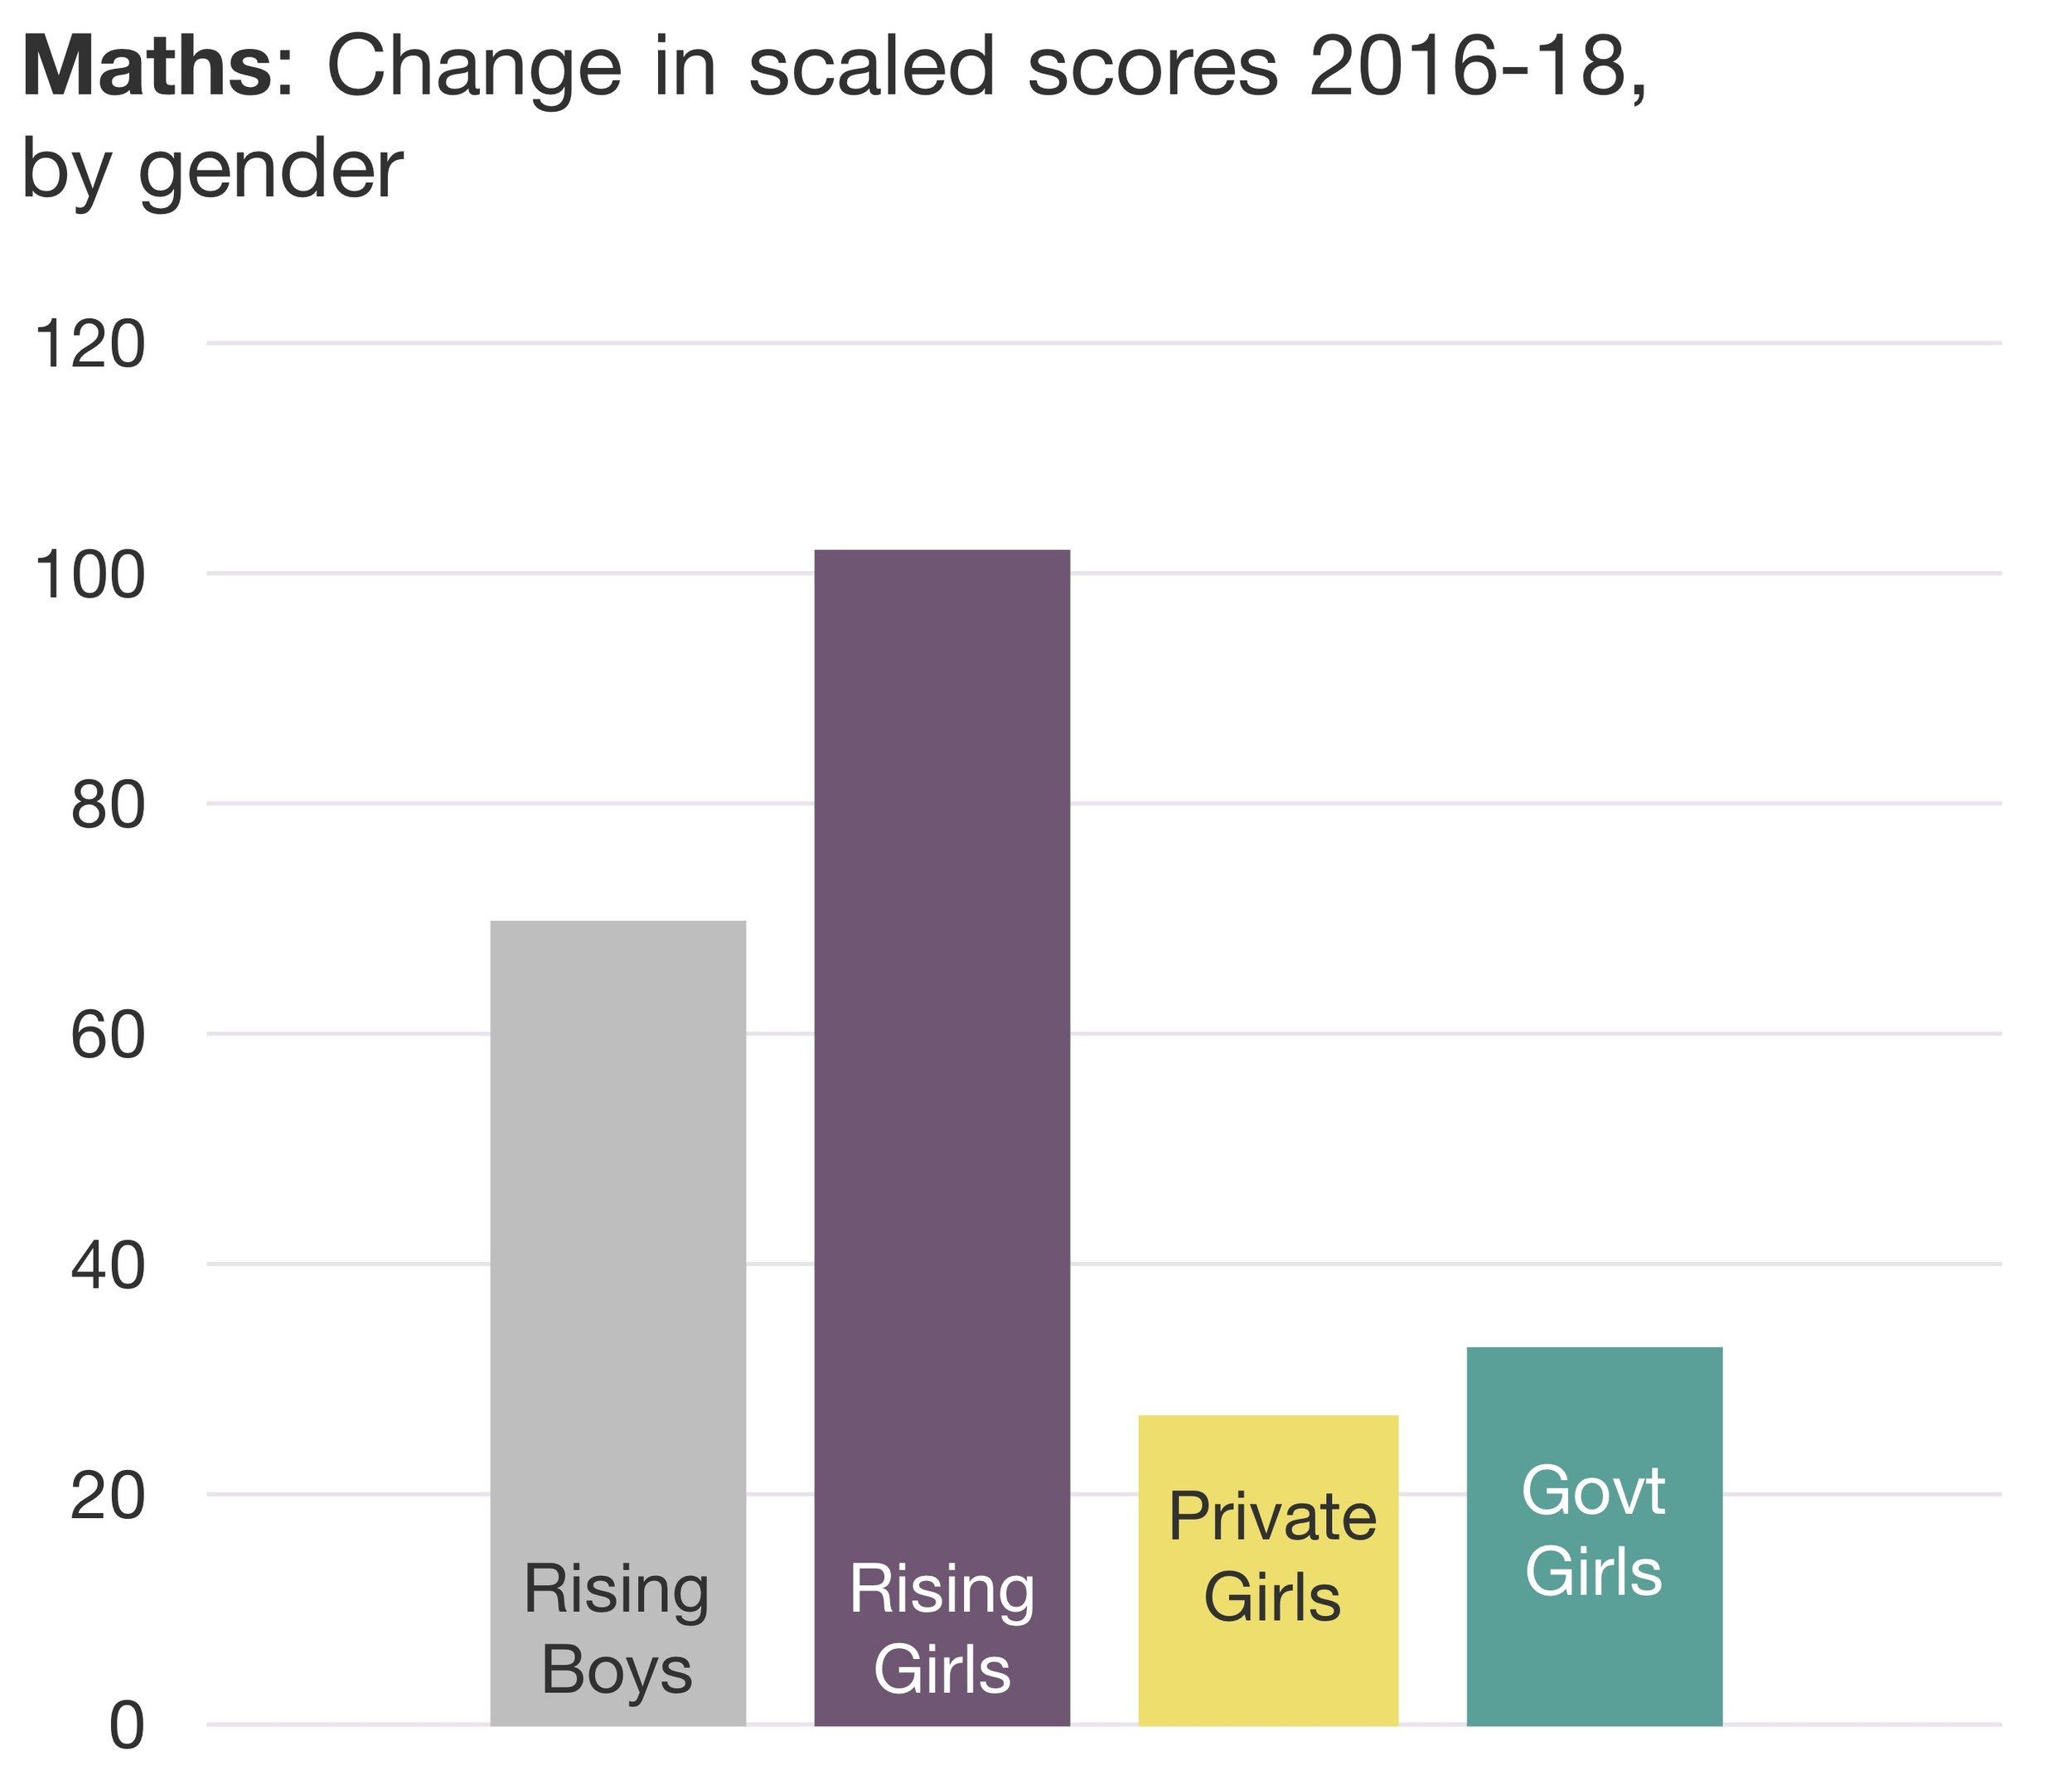 Figure 3. Maths gains by gender